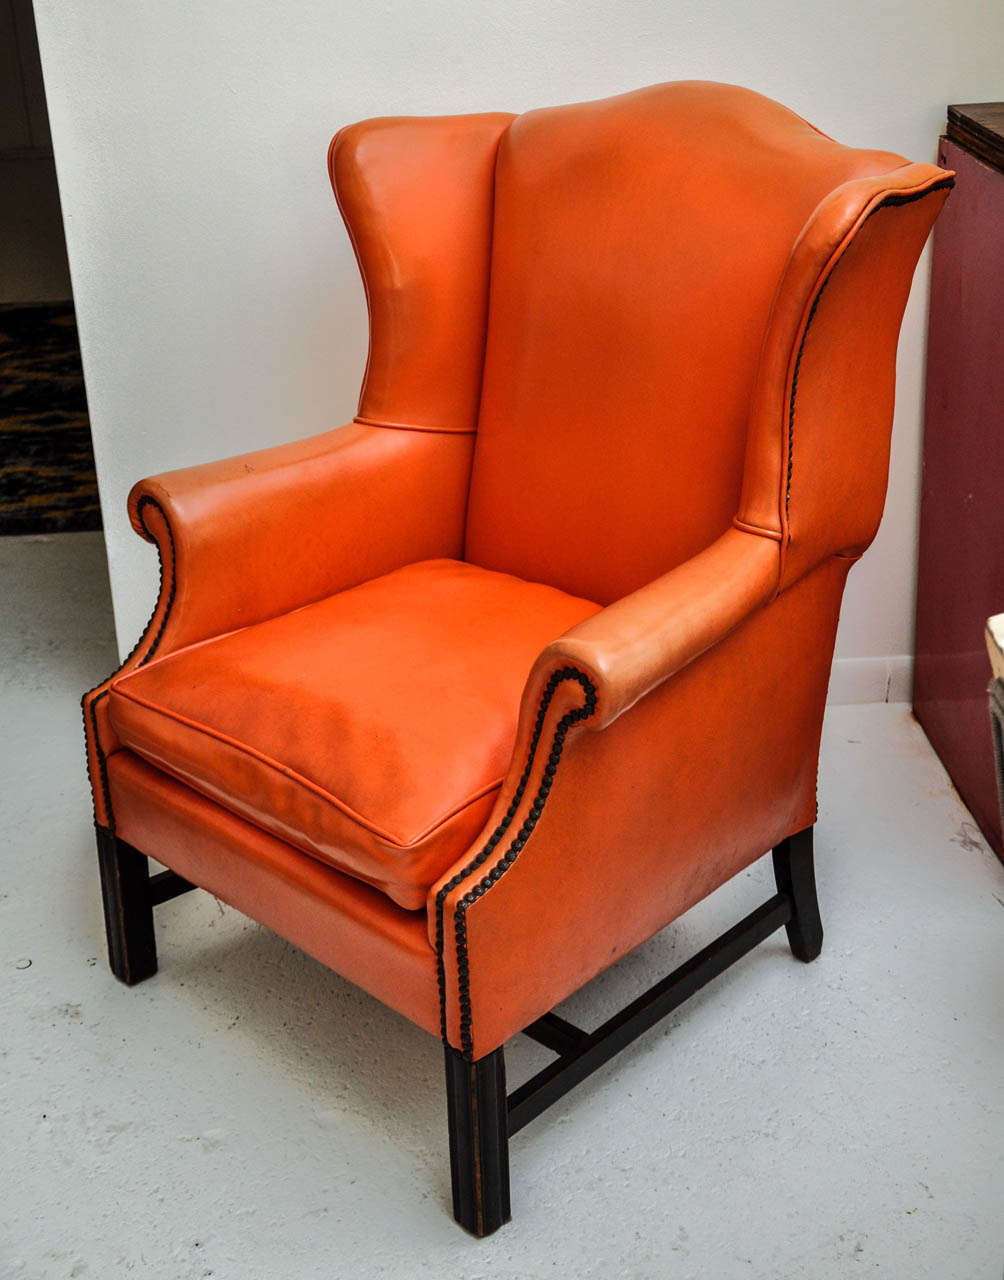 Vintage Orange Leather Wing Chair with distressed espresso wood base and  antique brass nailhead trim - Vintage Orange Leather Wing Chair At 1stdibs